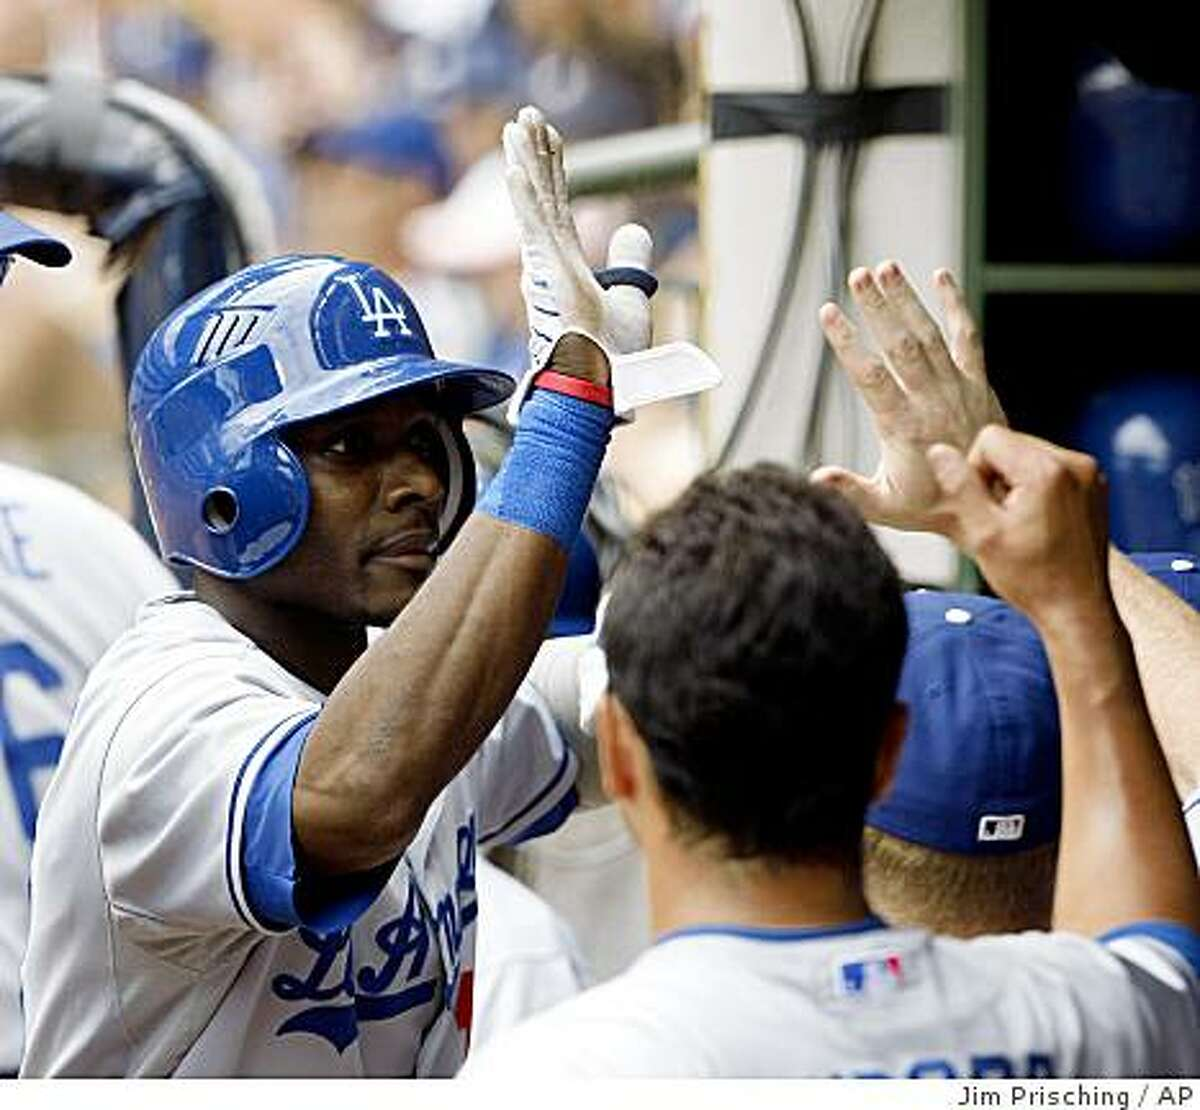 Los Angeles Dodgers' Orlando Hudson is congratulated by teammates after his second home run against the Milwaukee Brewers during the eighth inning of a baseball game Sunday, July 12, 2009, in Milwaukee. The Dodgers defeated the Brewers 7-4. (AP Photo/Jim Prisching)